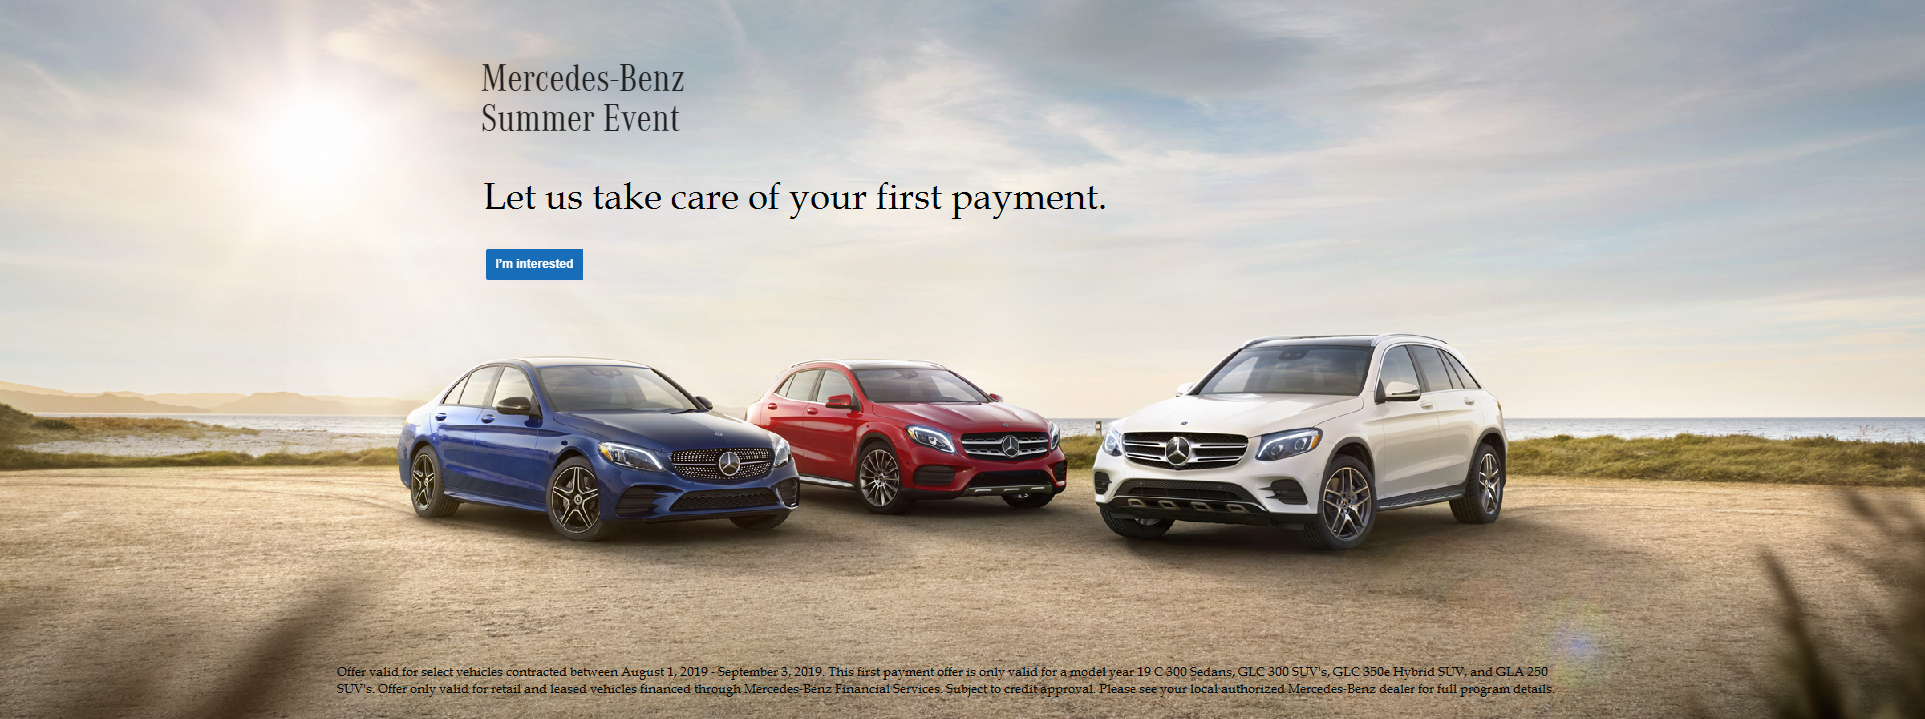 Mercedes-Benz Dealership | Car Dealer | Mercedes-Benz of Pleasanton, CA